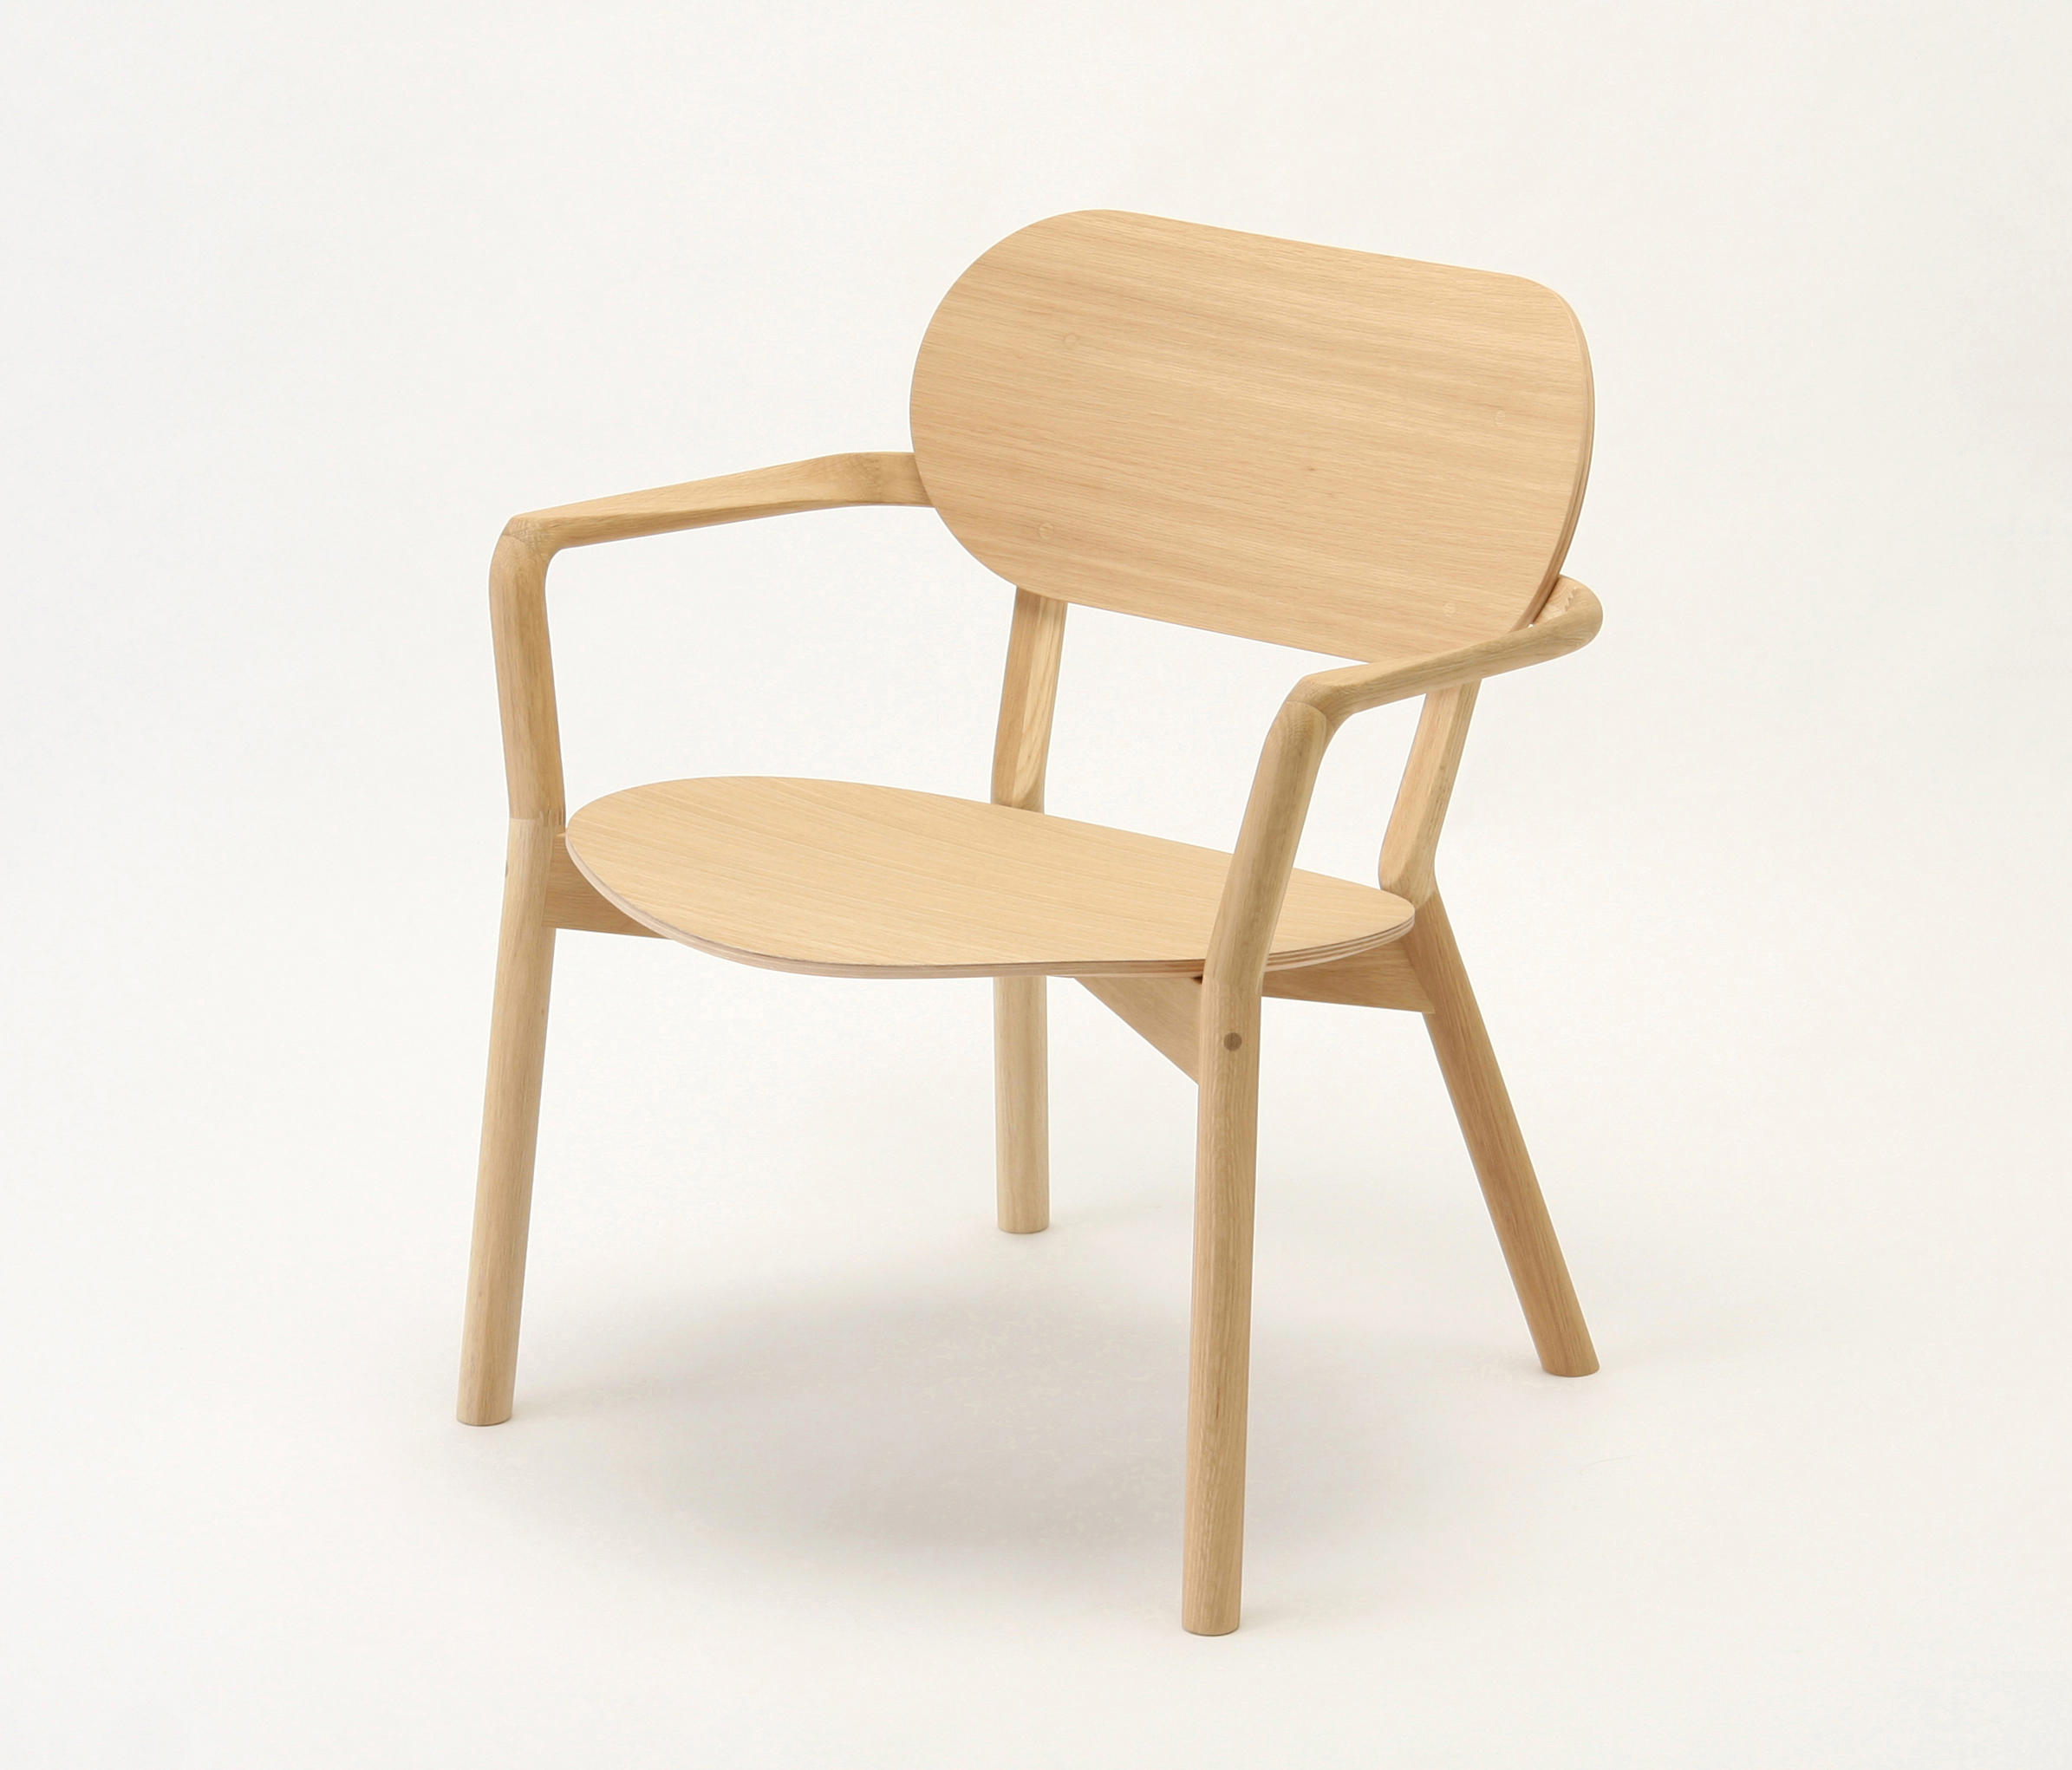 CASTOR LOW CHAIR Lounge chairs from Karimoku New